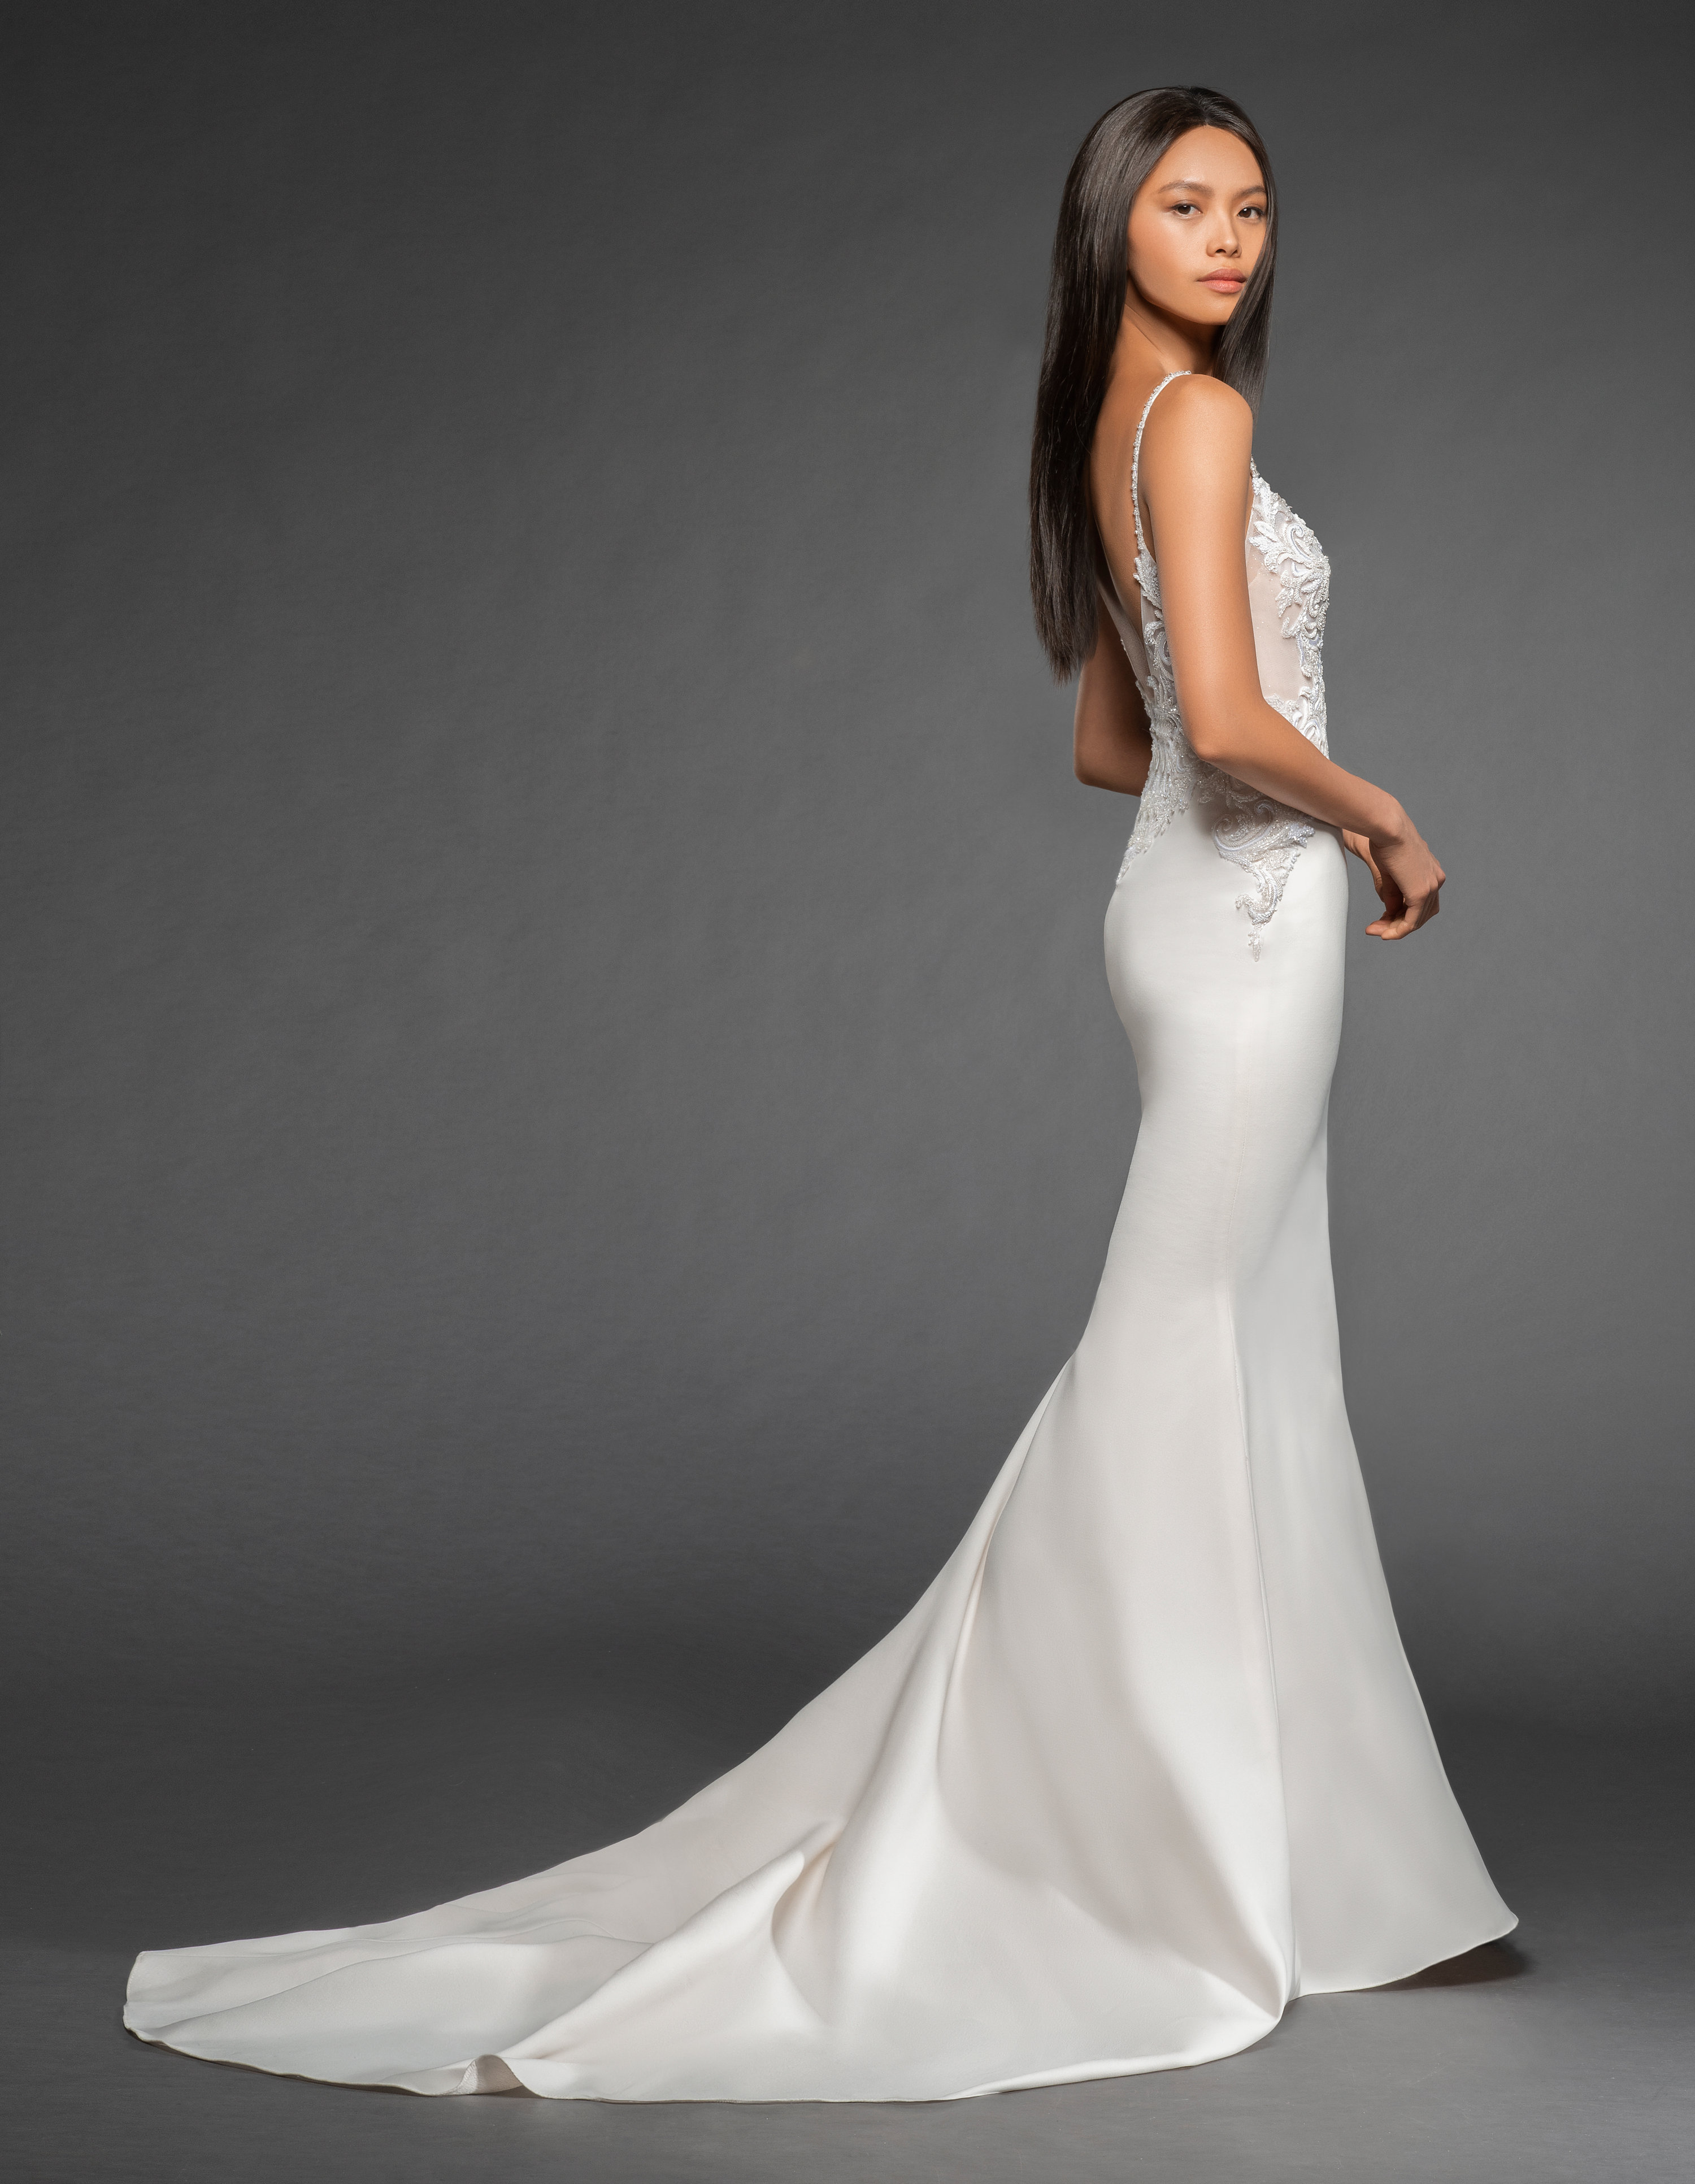 b5a484d8a4da Bridal Gowns and Wedding Dresses by JLM Couture - Style 3852 Elena